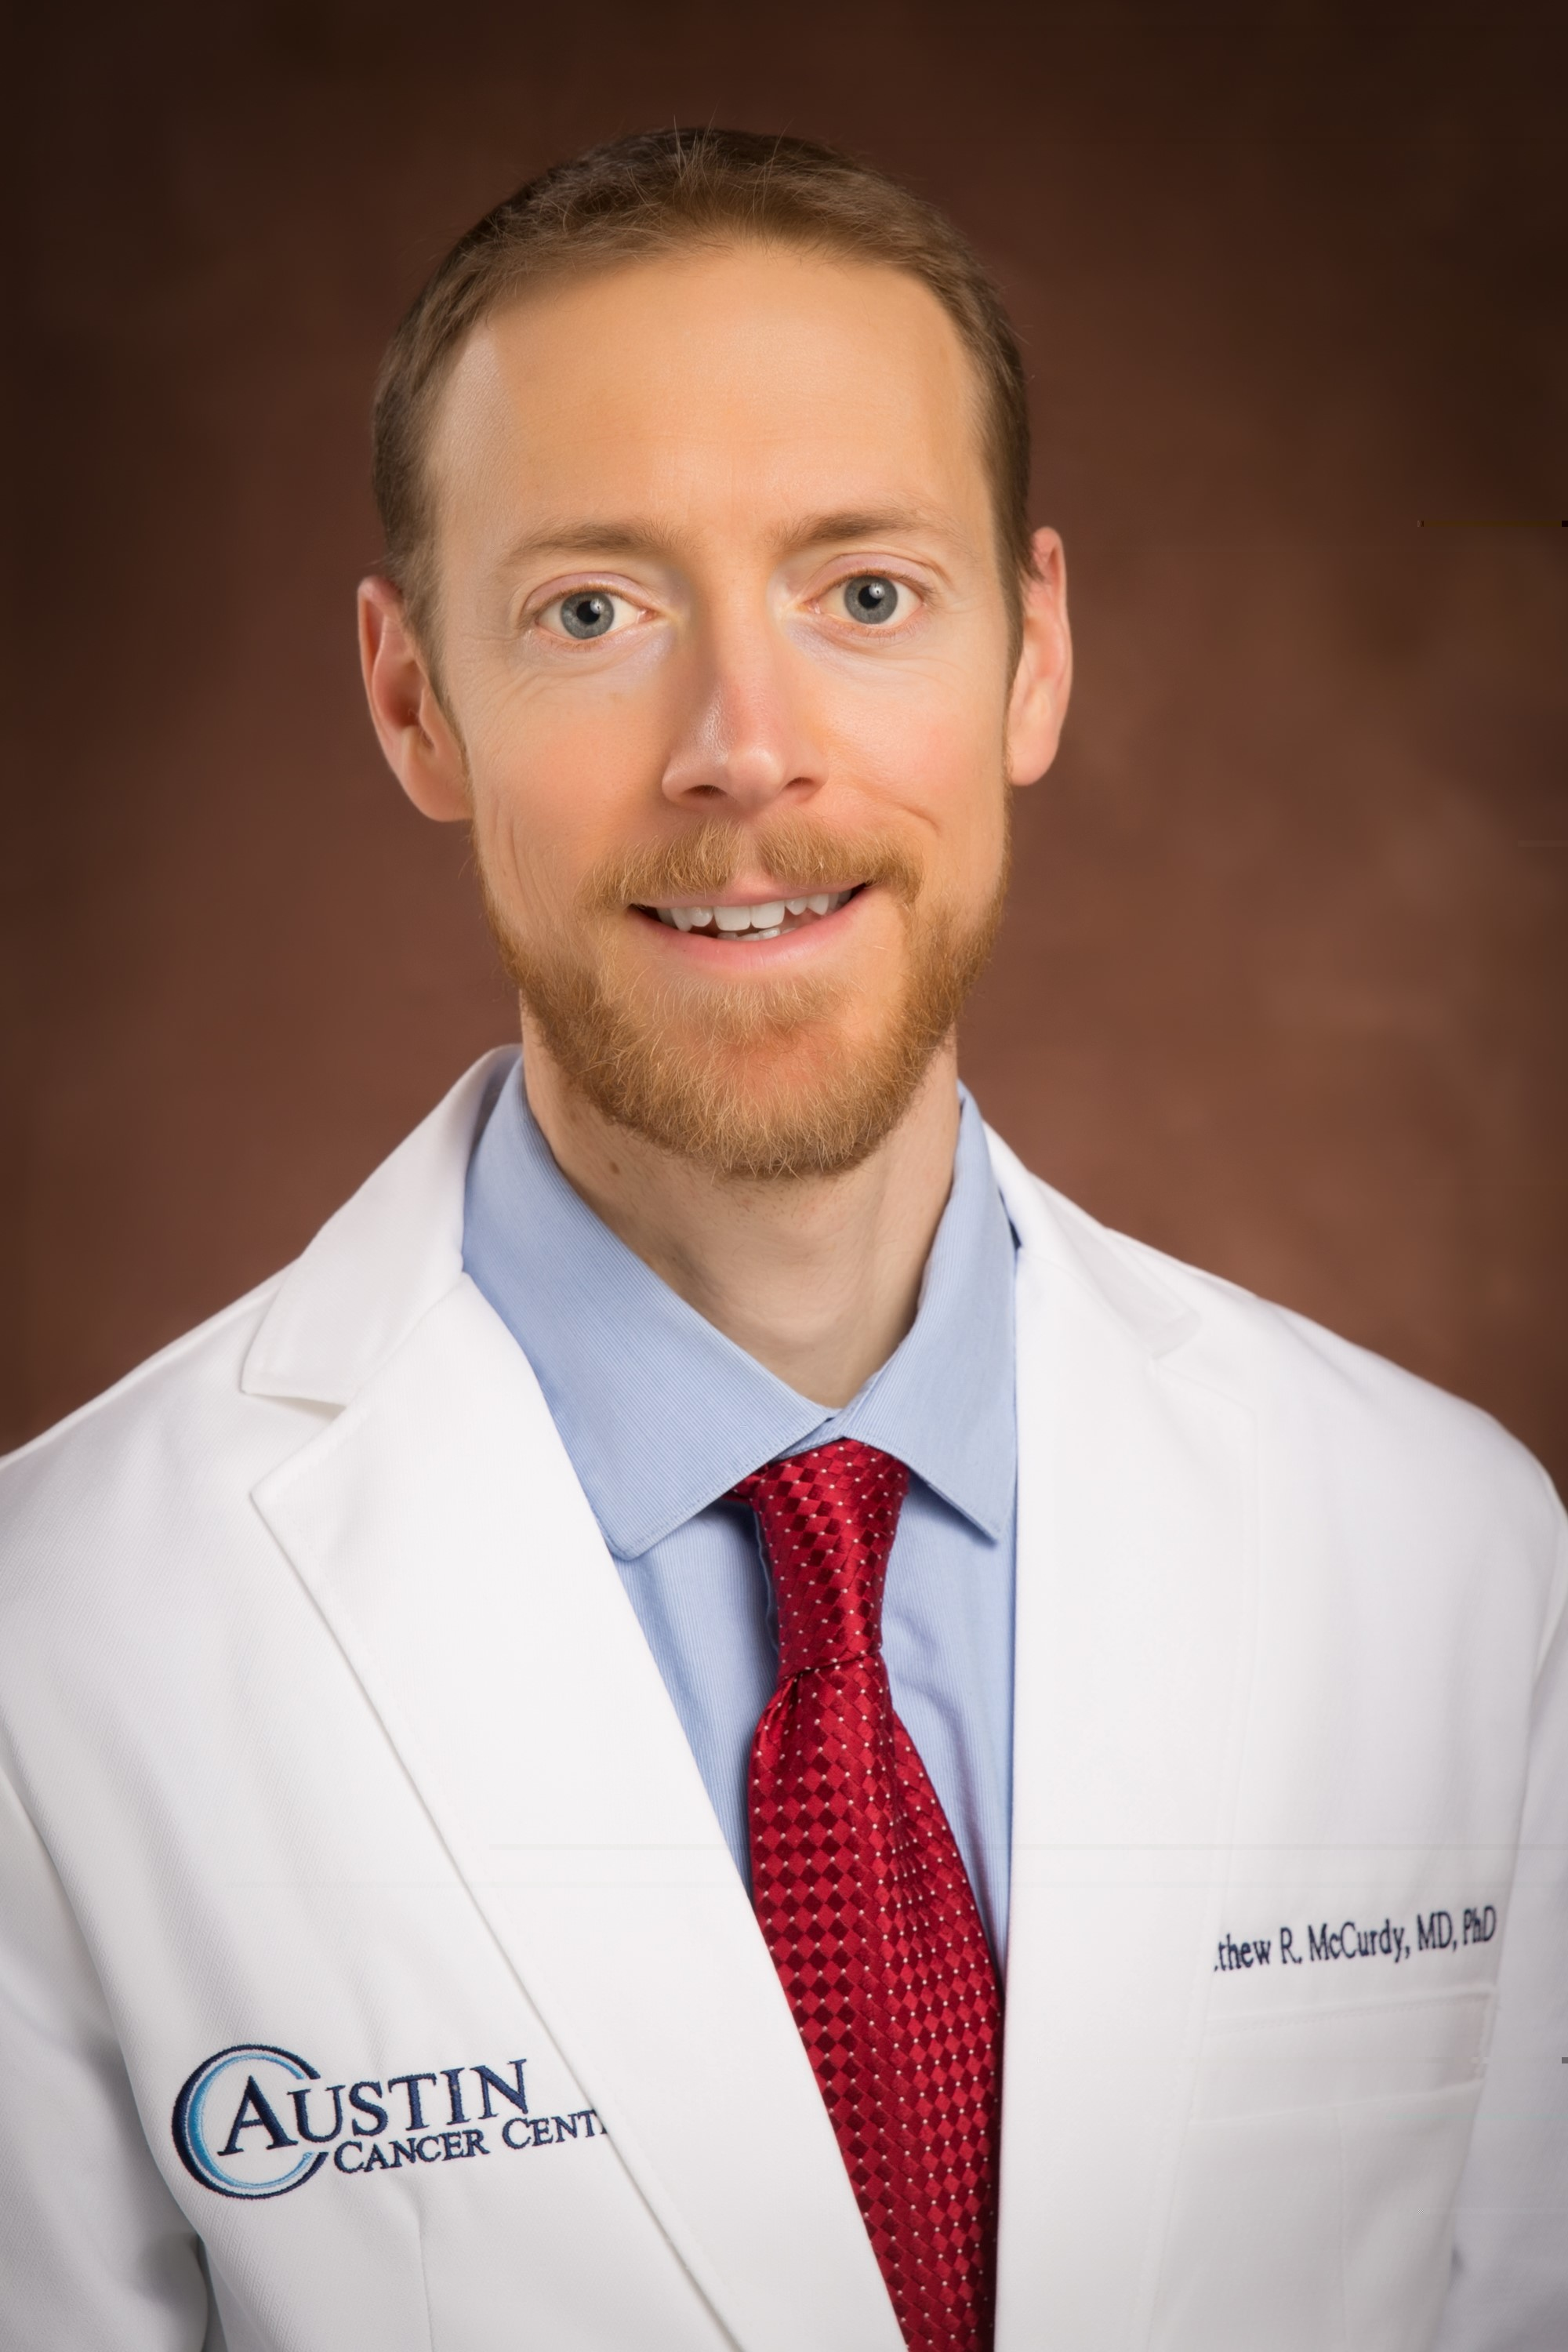 Matt McCurdy MD